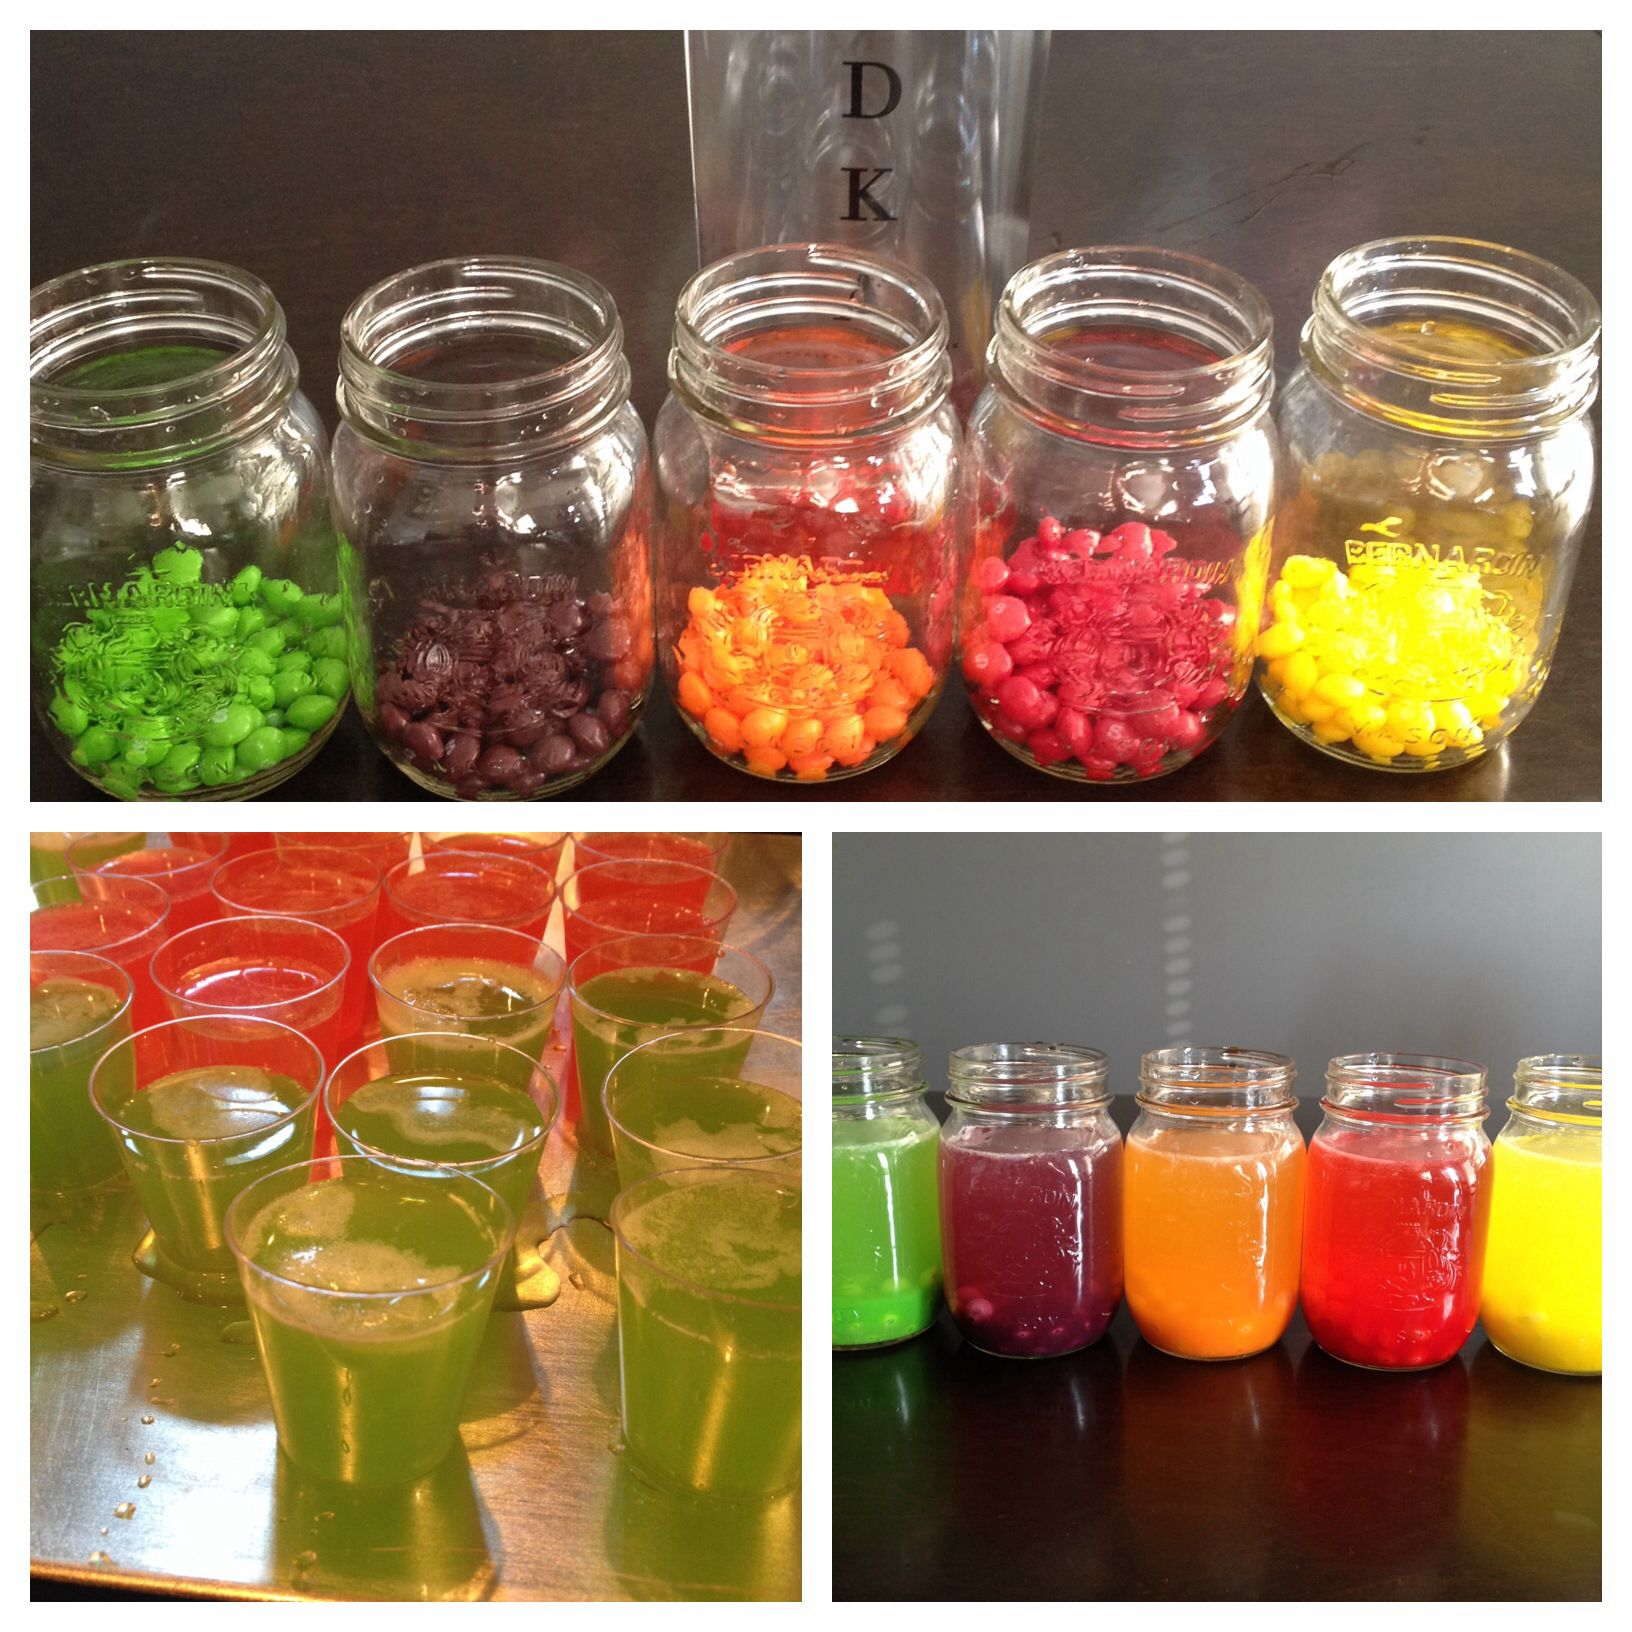 Skittles Vodka You Will Need A 1 75 Litre Bottle Of Vodka We Used Kirkland Brand From Costco And 1 Pound Of Sk Moonshine Recipes Yummy Drinks Summer Drinks